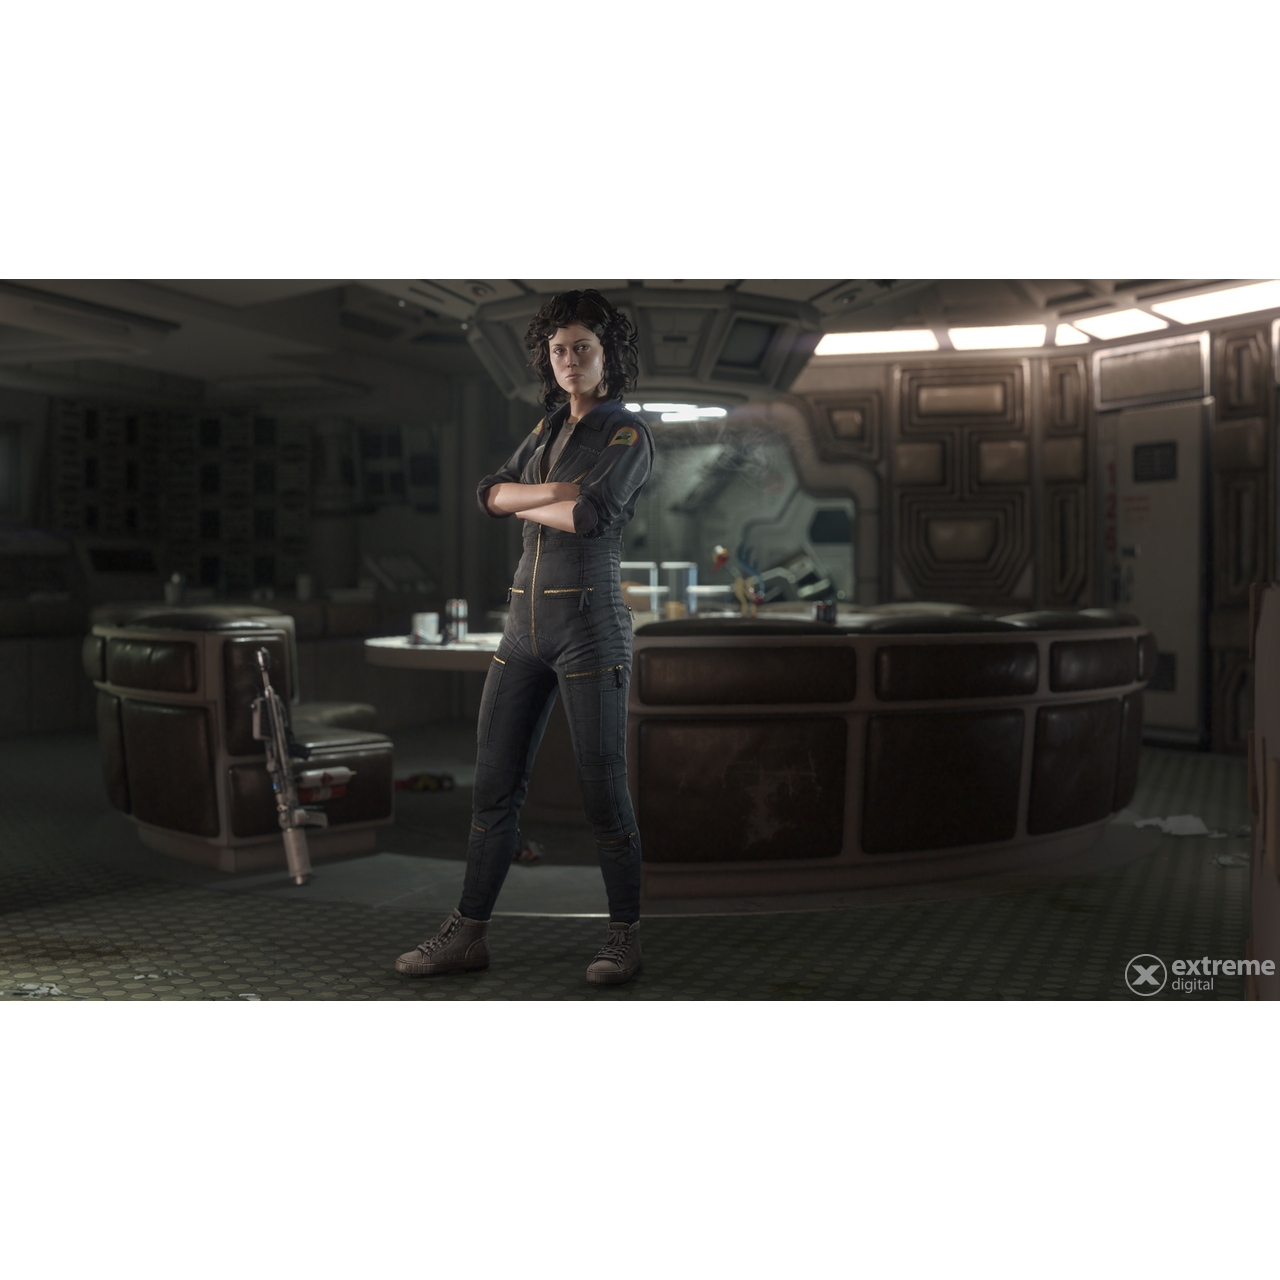 alien-isolation-nostromo-edition-pc-jatek_11c50070.jpg